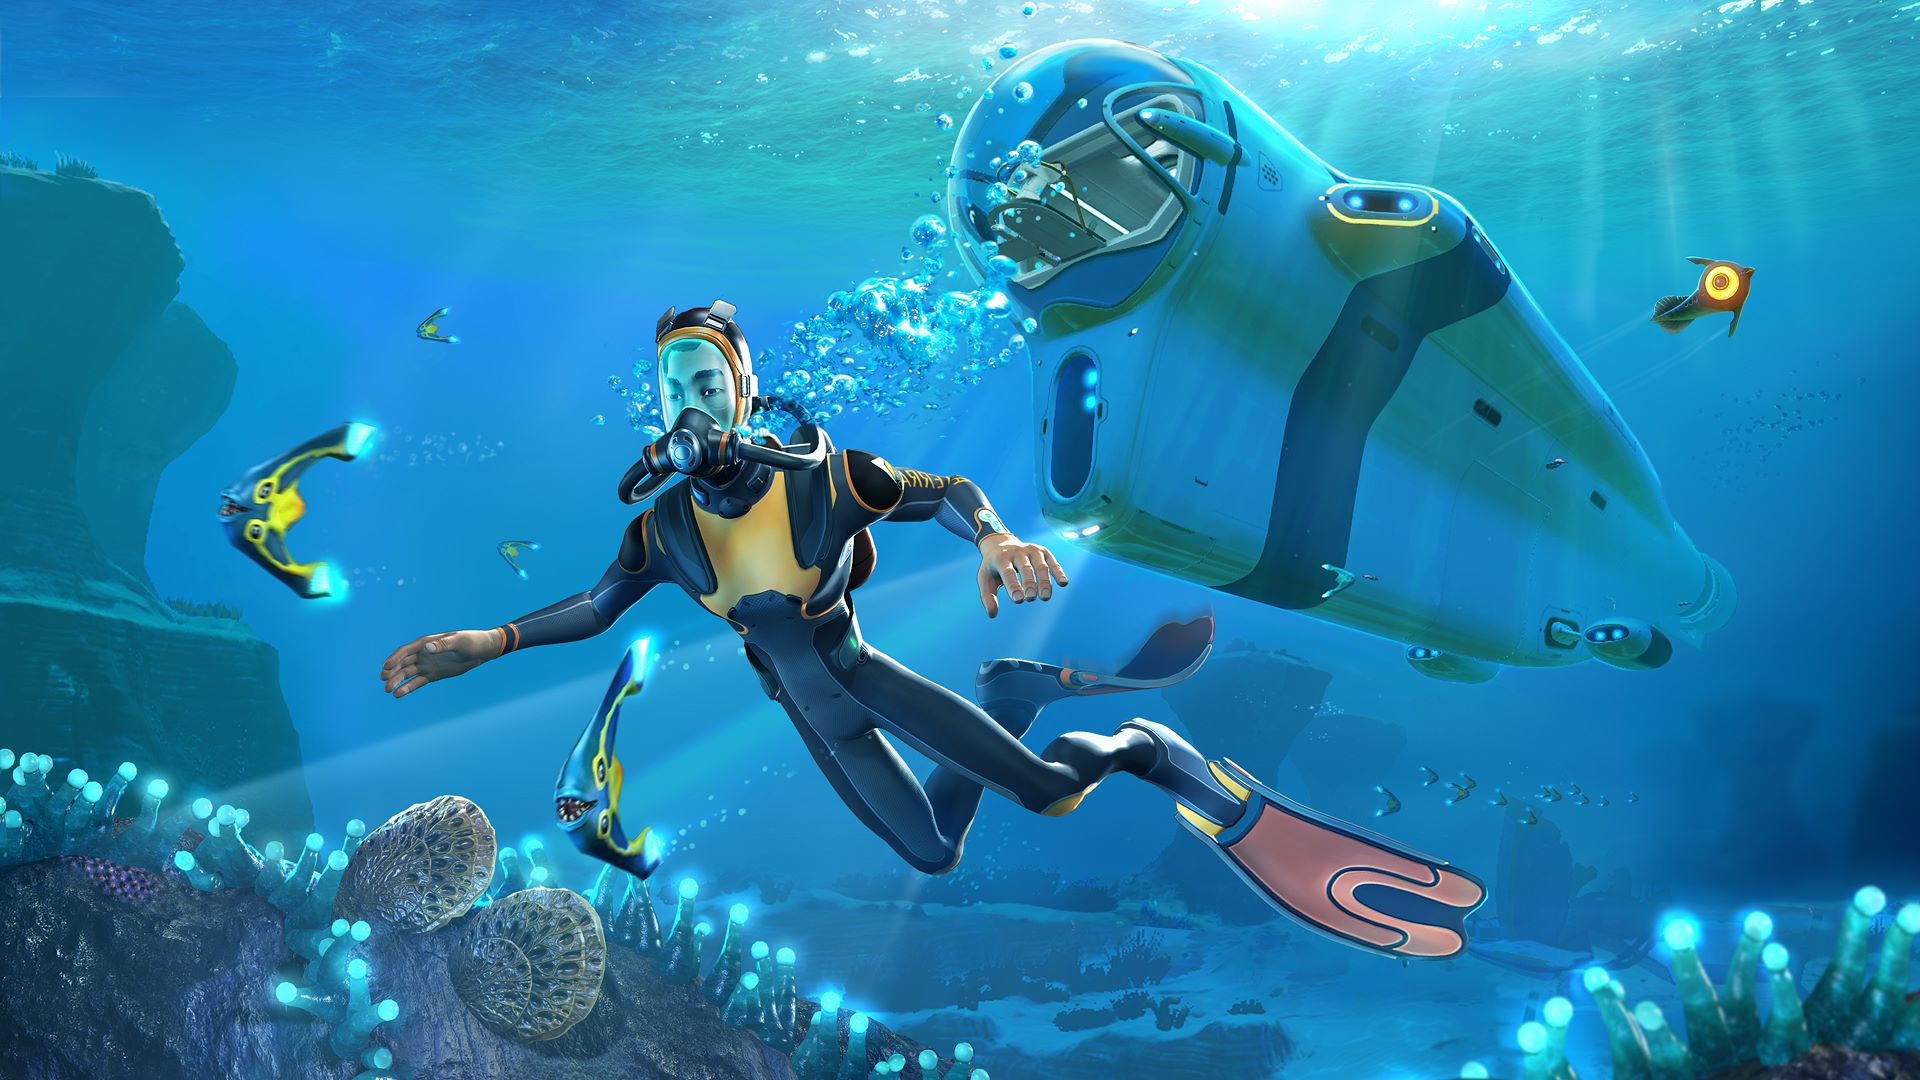 Subnautica Epic Games Store PC